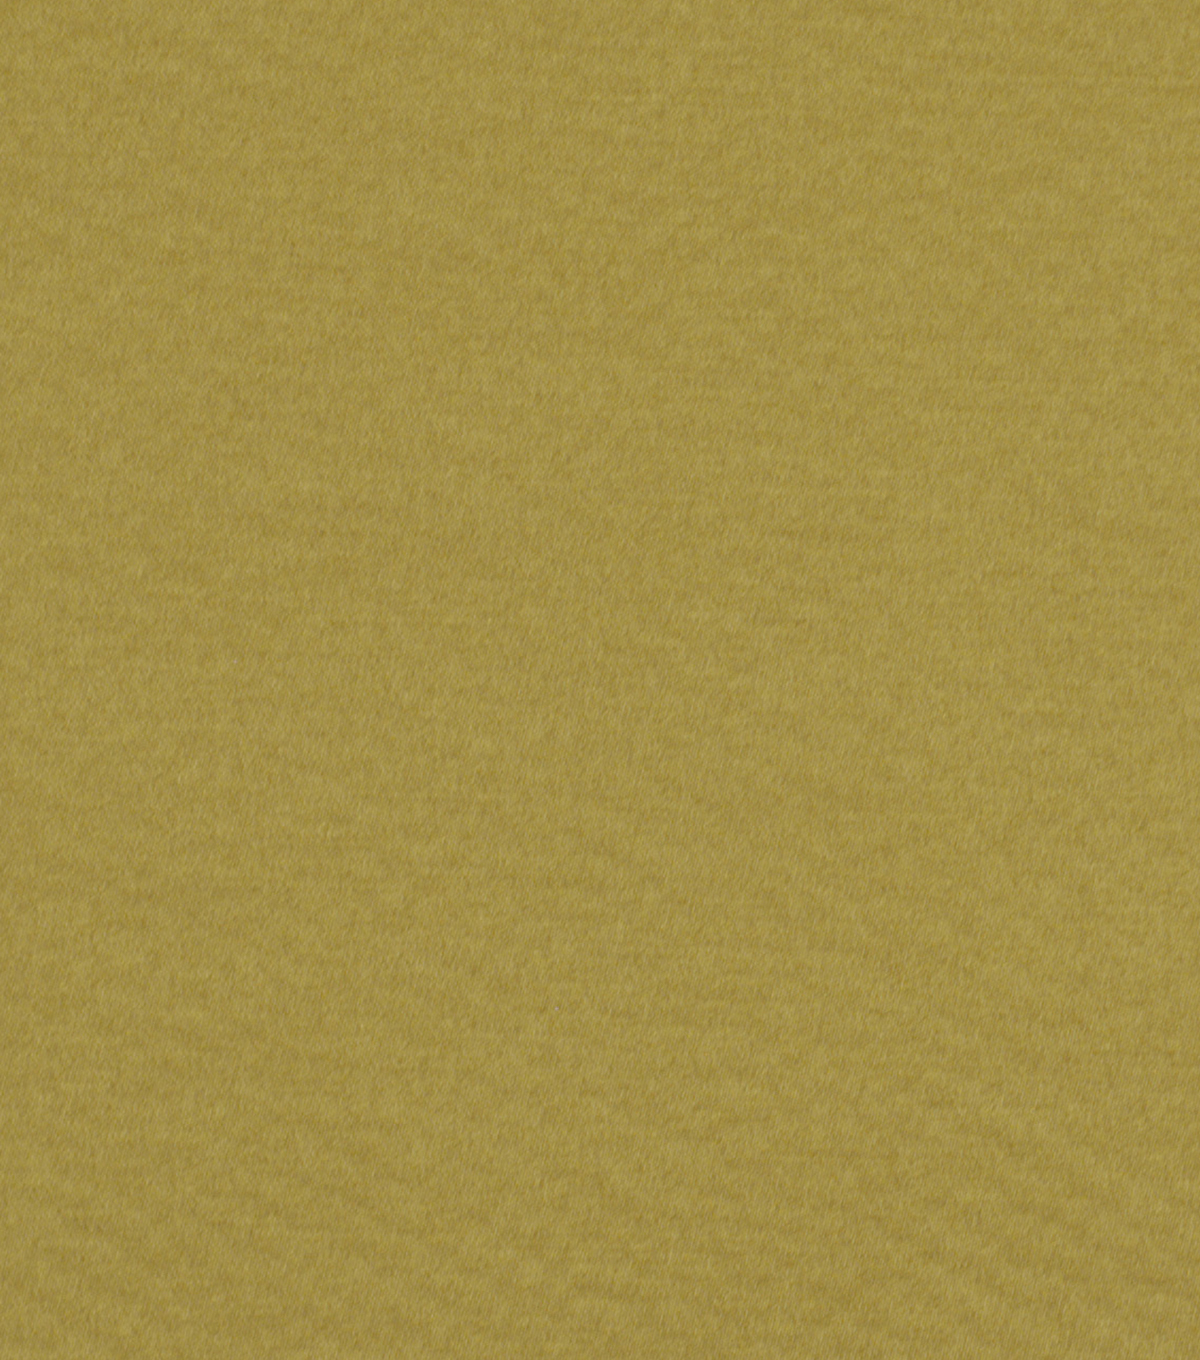 Home Decor 8\u0022x8\u0022 Fabric Swatch-Robert Allen Glam Sheen Citrine